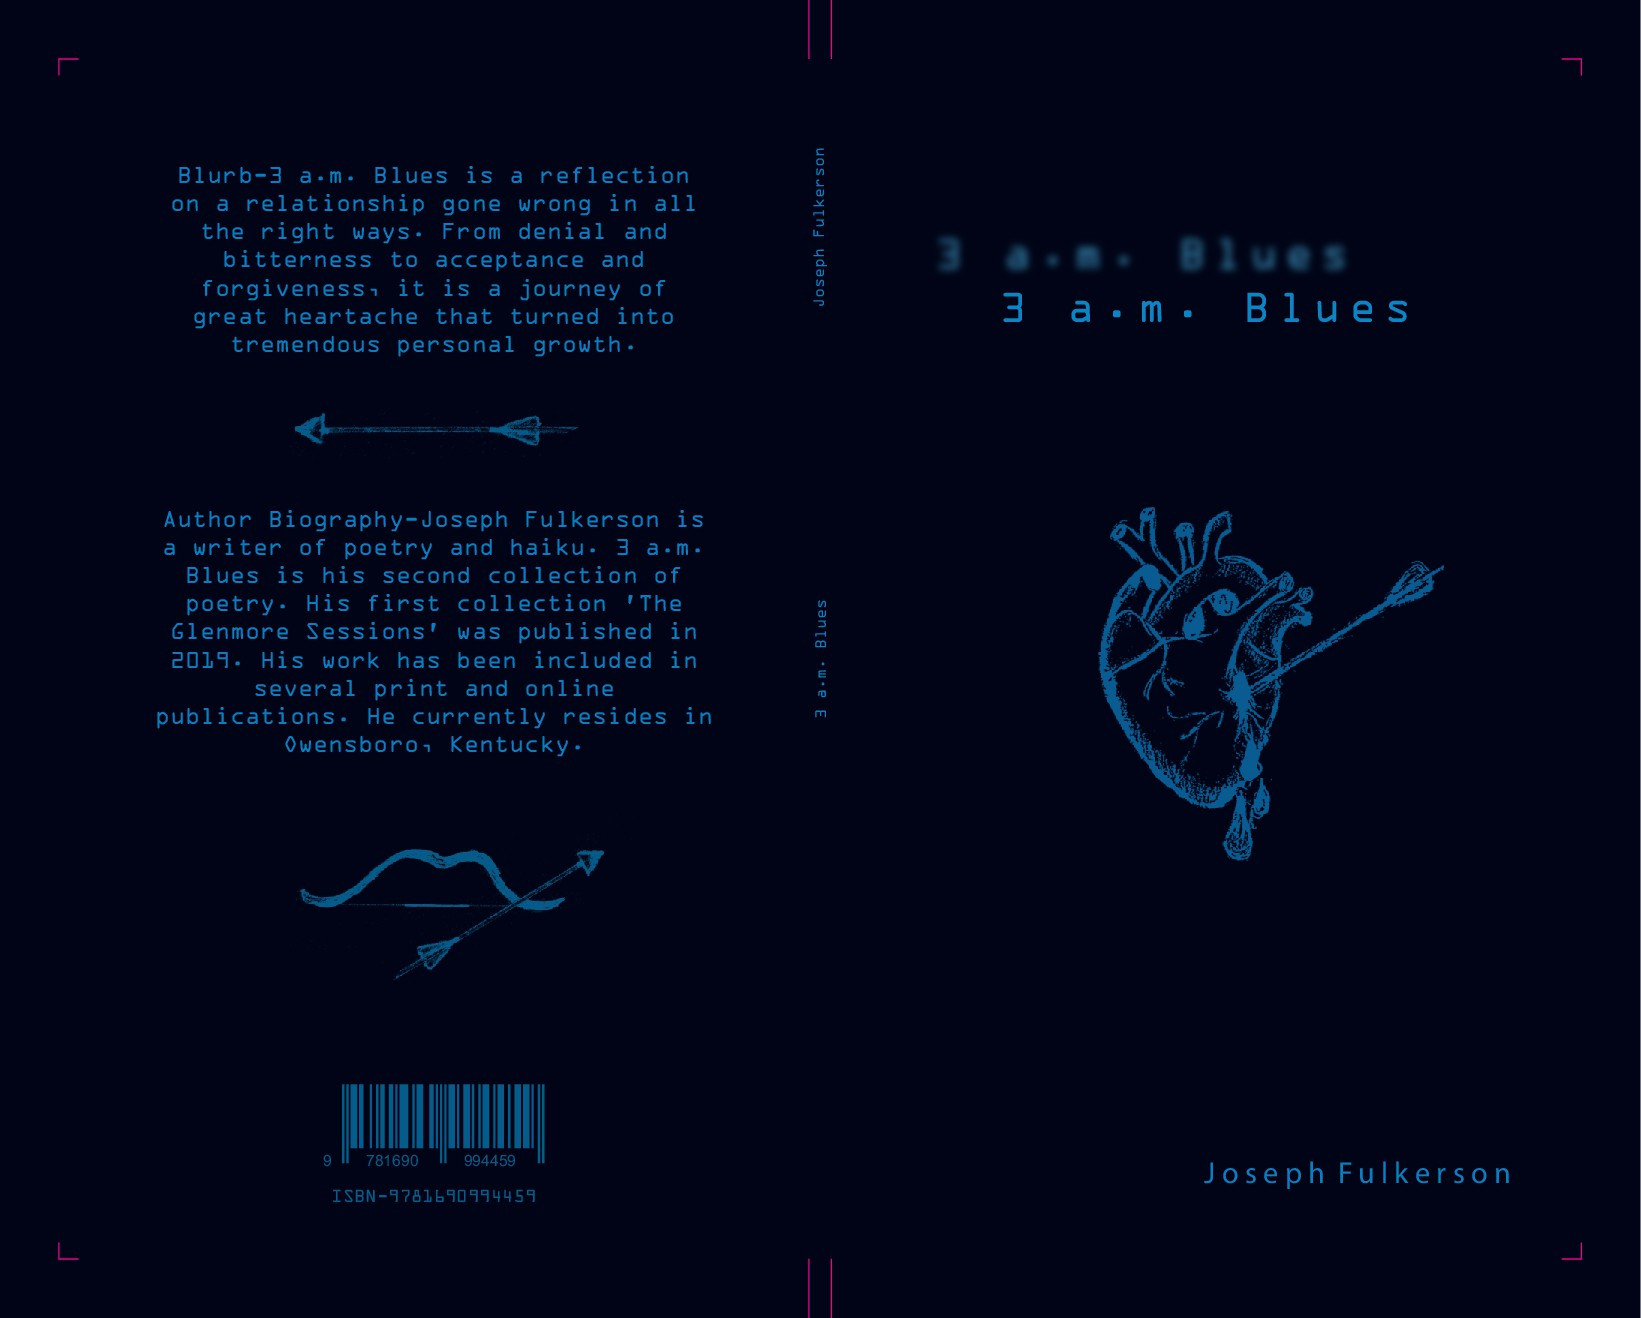 A front and back cover for a collection of poetry